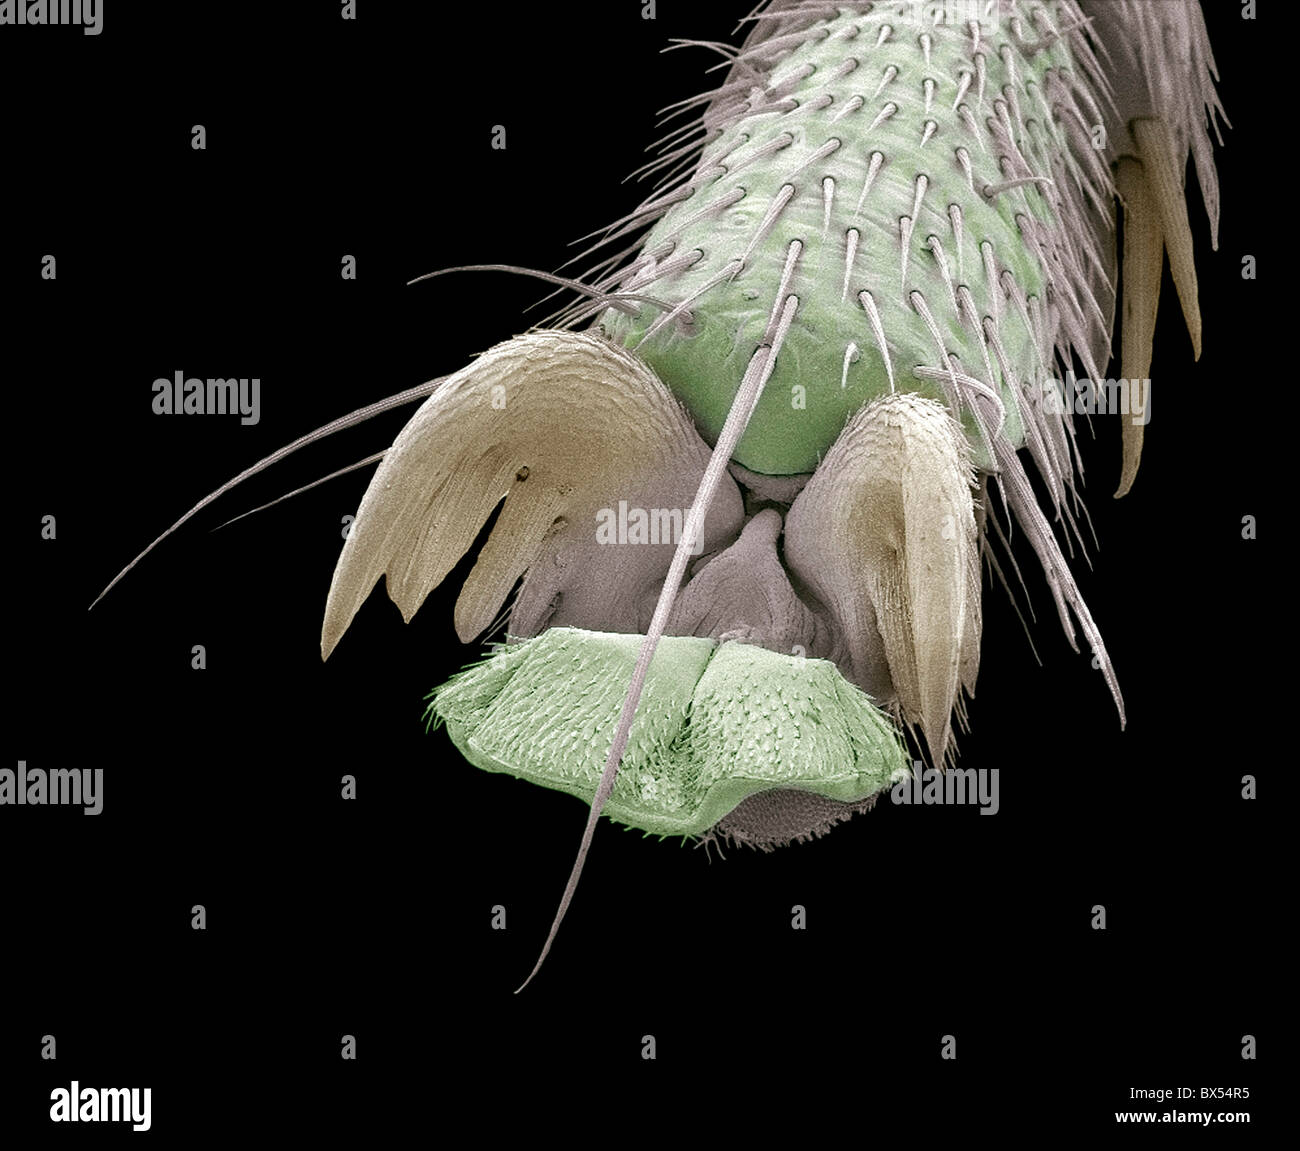 Scorpion fly foot, SEM - Stock Image